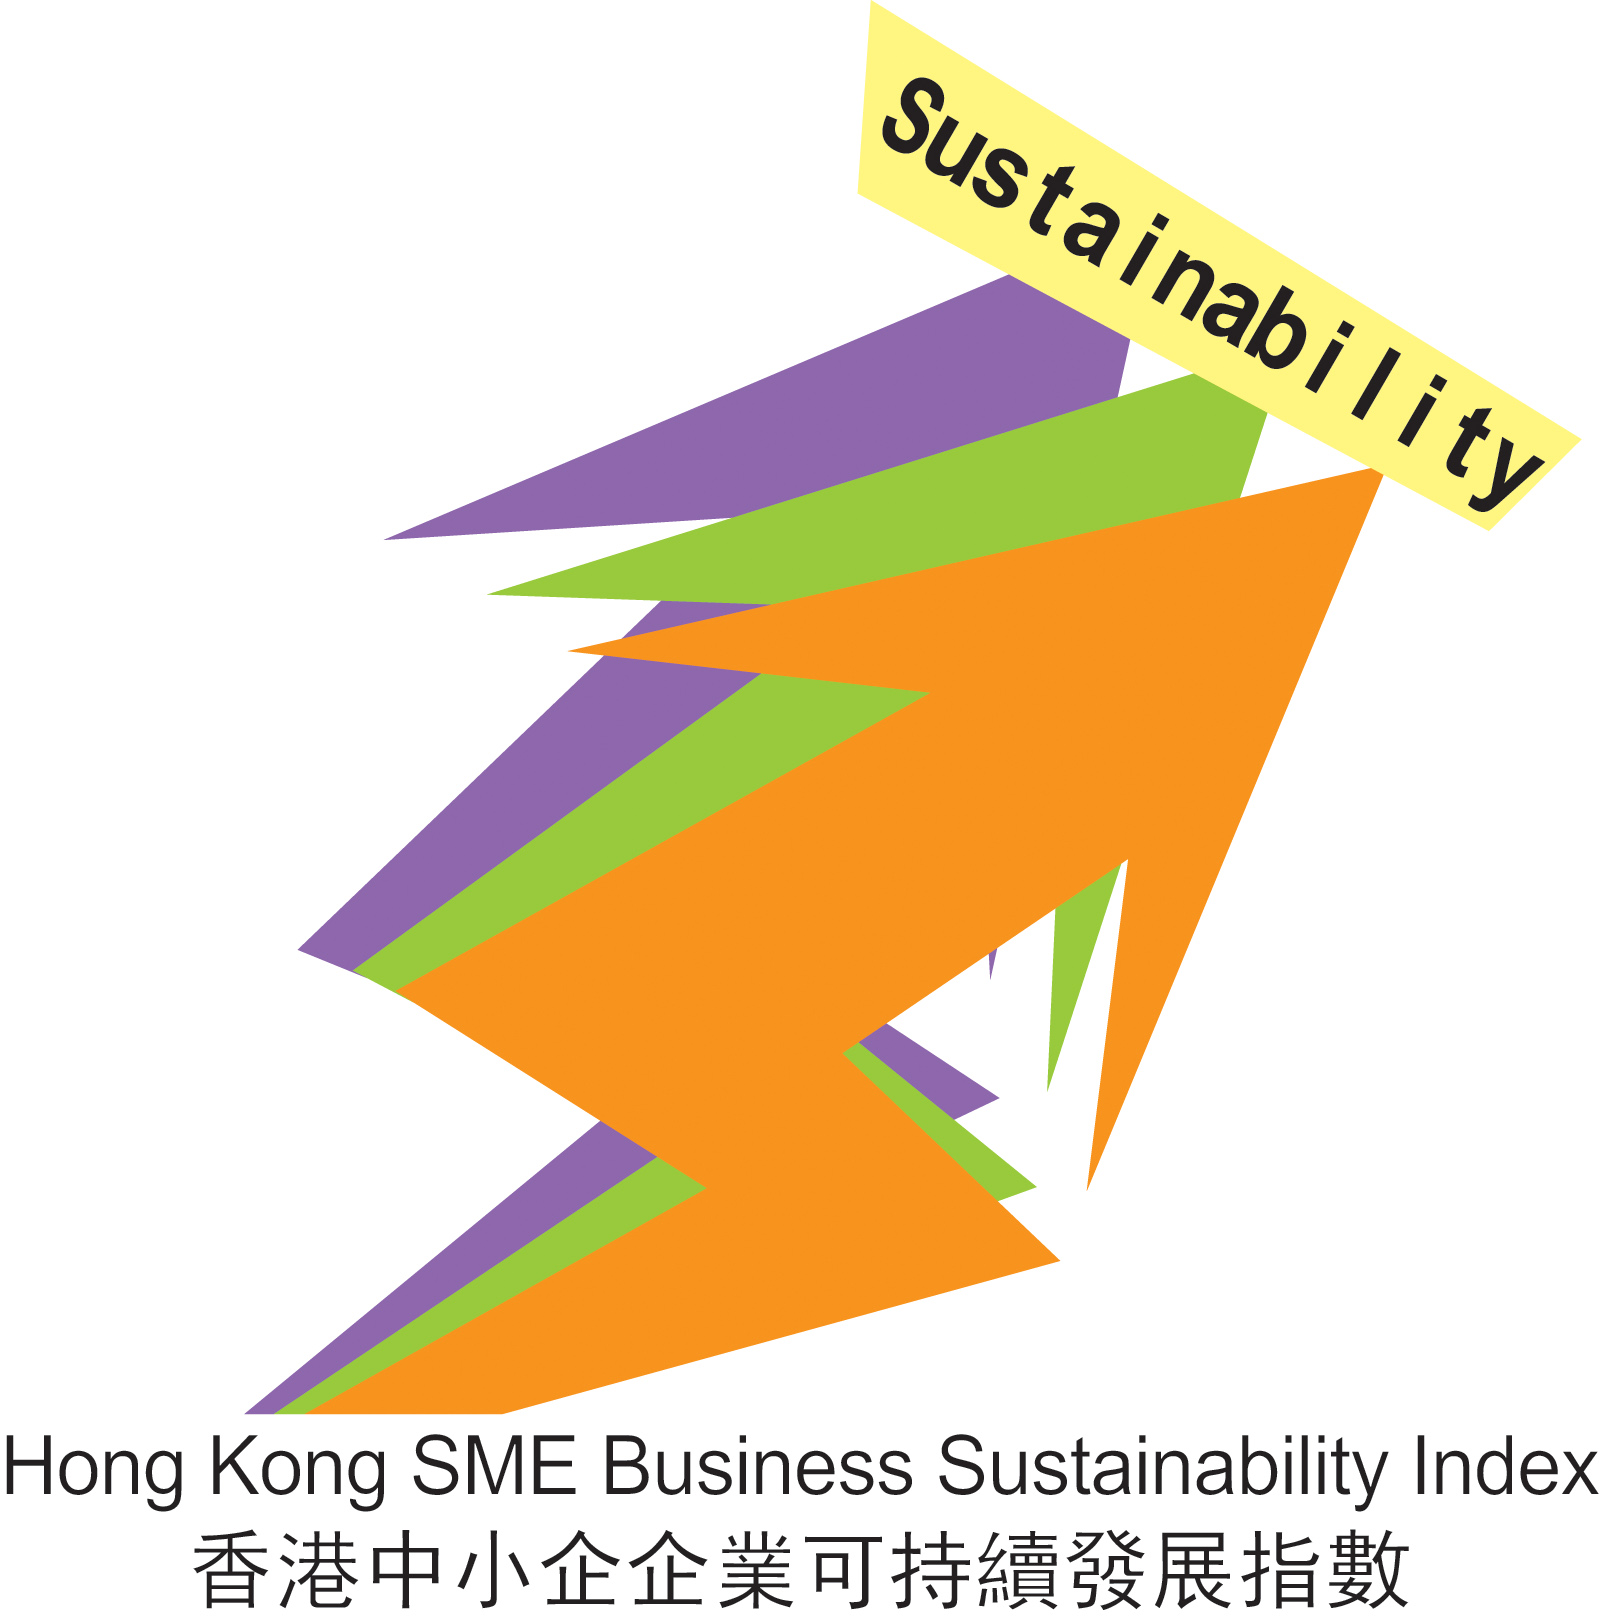 Hong Kong SME Business Sustainability Index 2012-2017